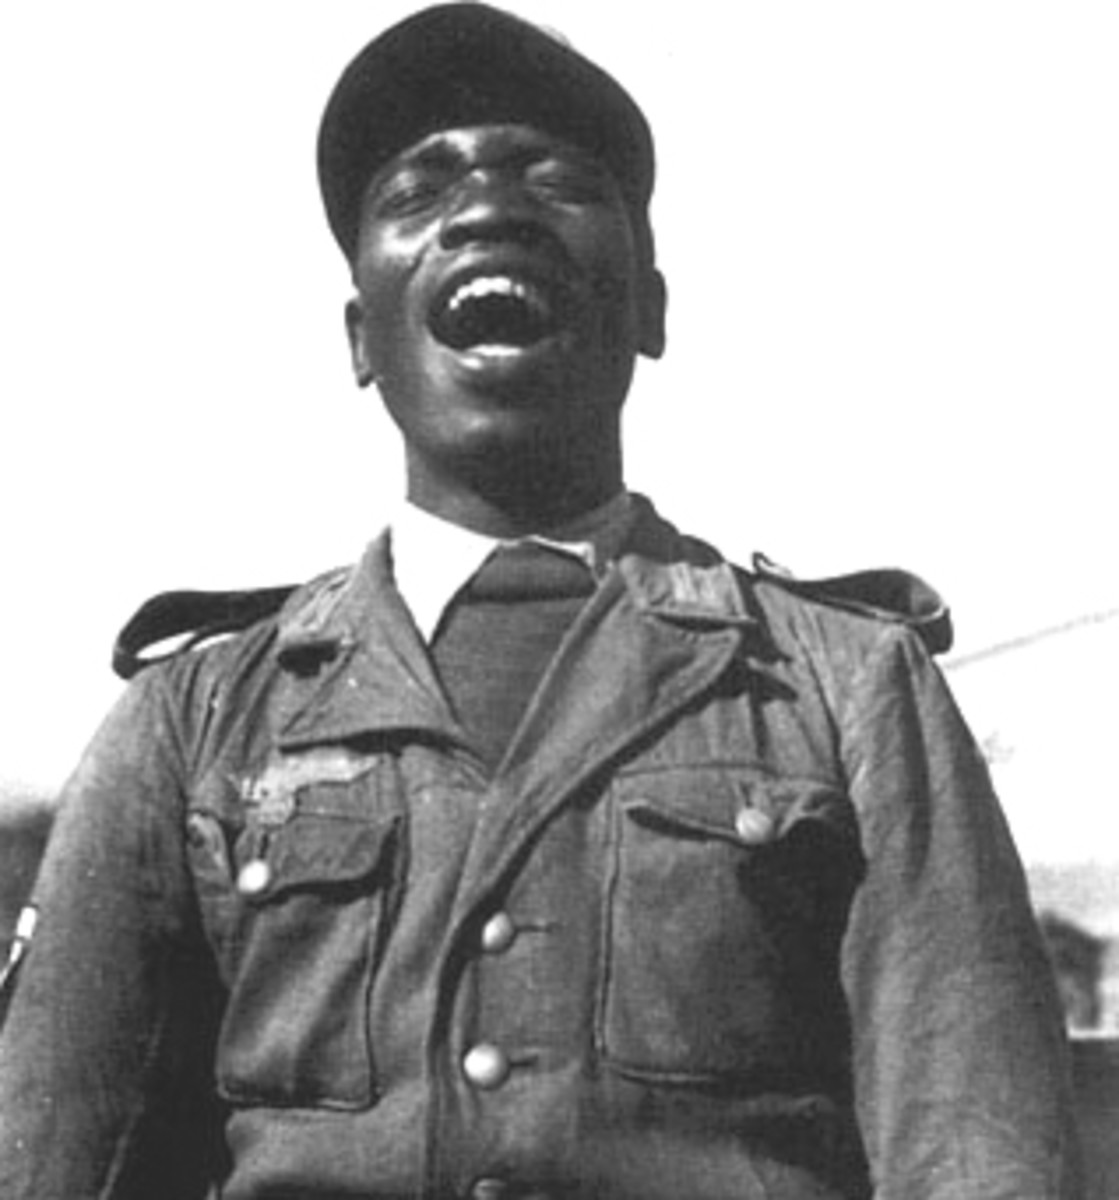 Another African-Muslim volunteer in the German Army